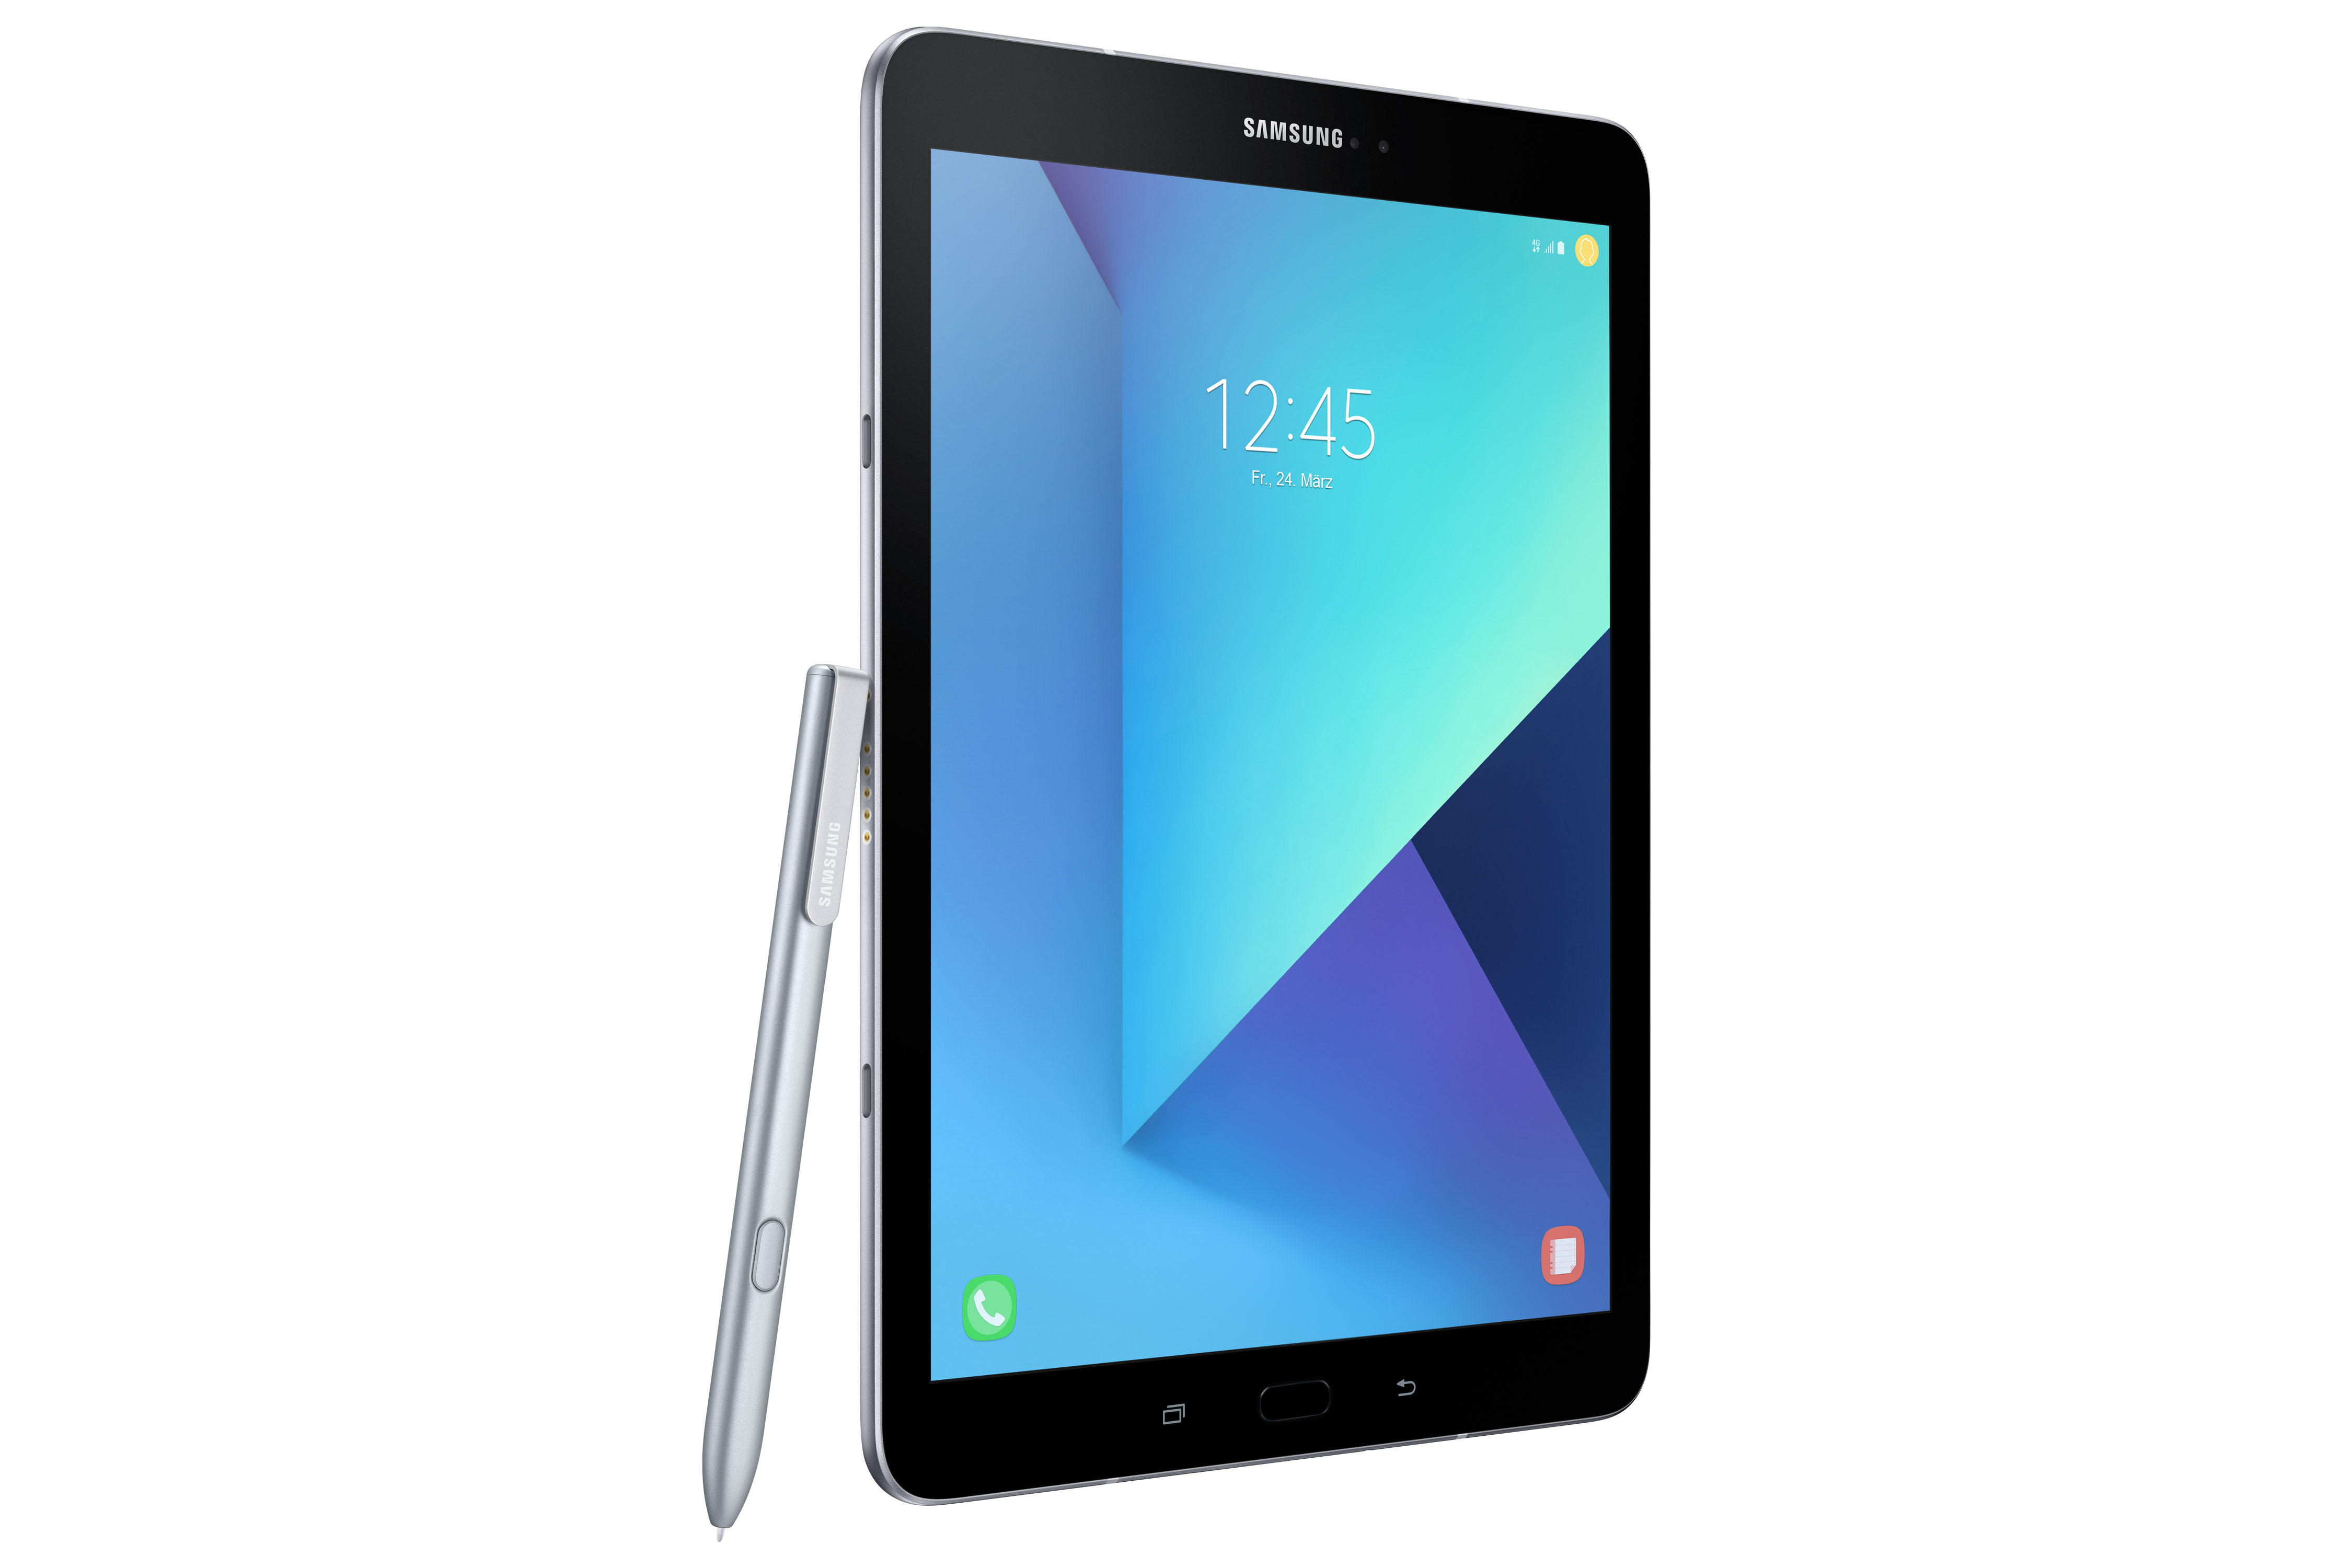 samsung galaxy tab s3 lte tablet pc zoll 24 59 cm. Black Bedroom Furniture Sets. Home Design Ideas